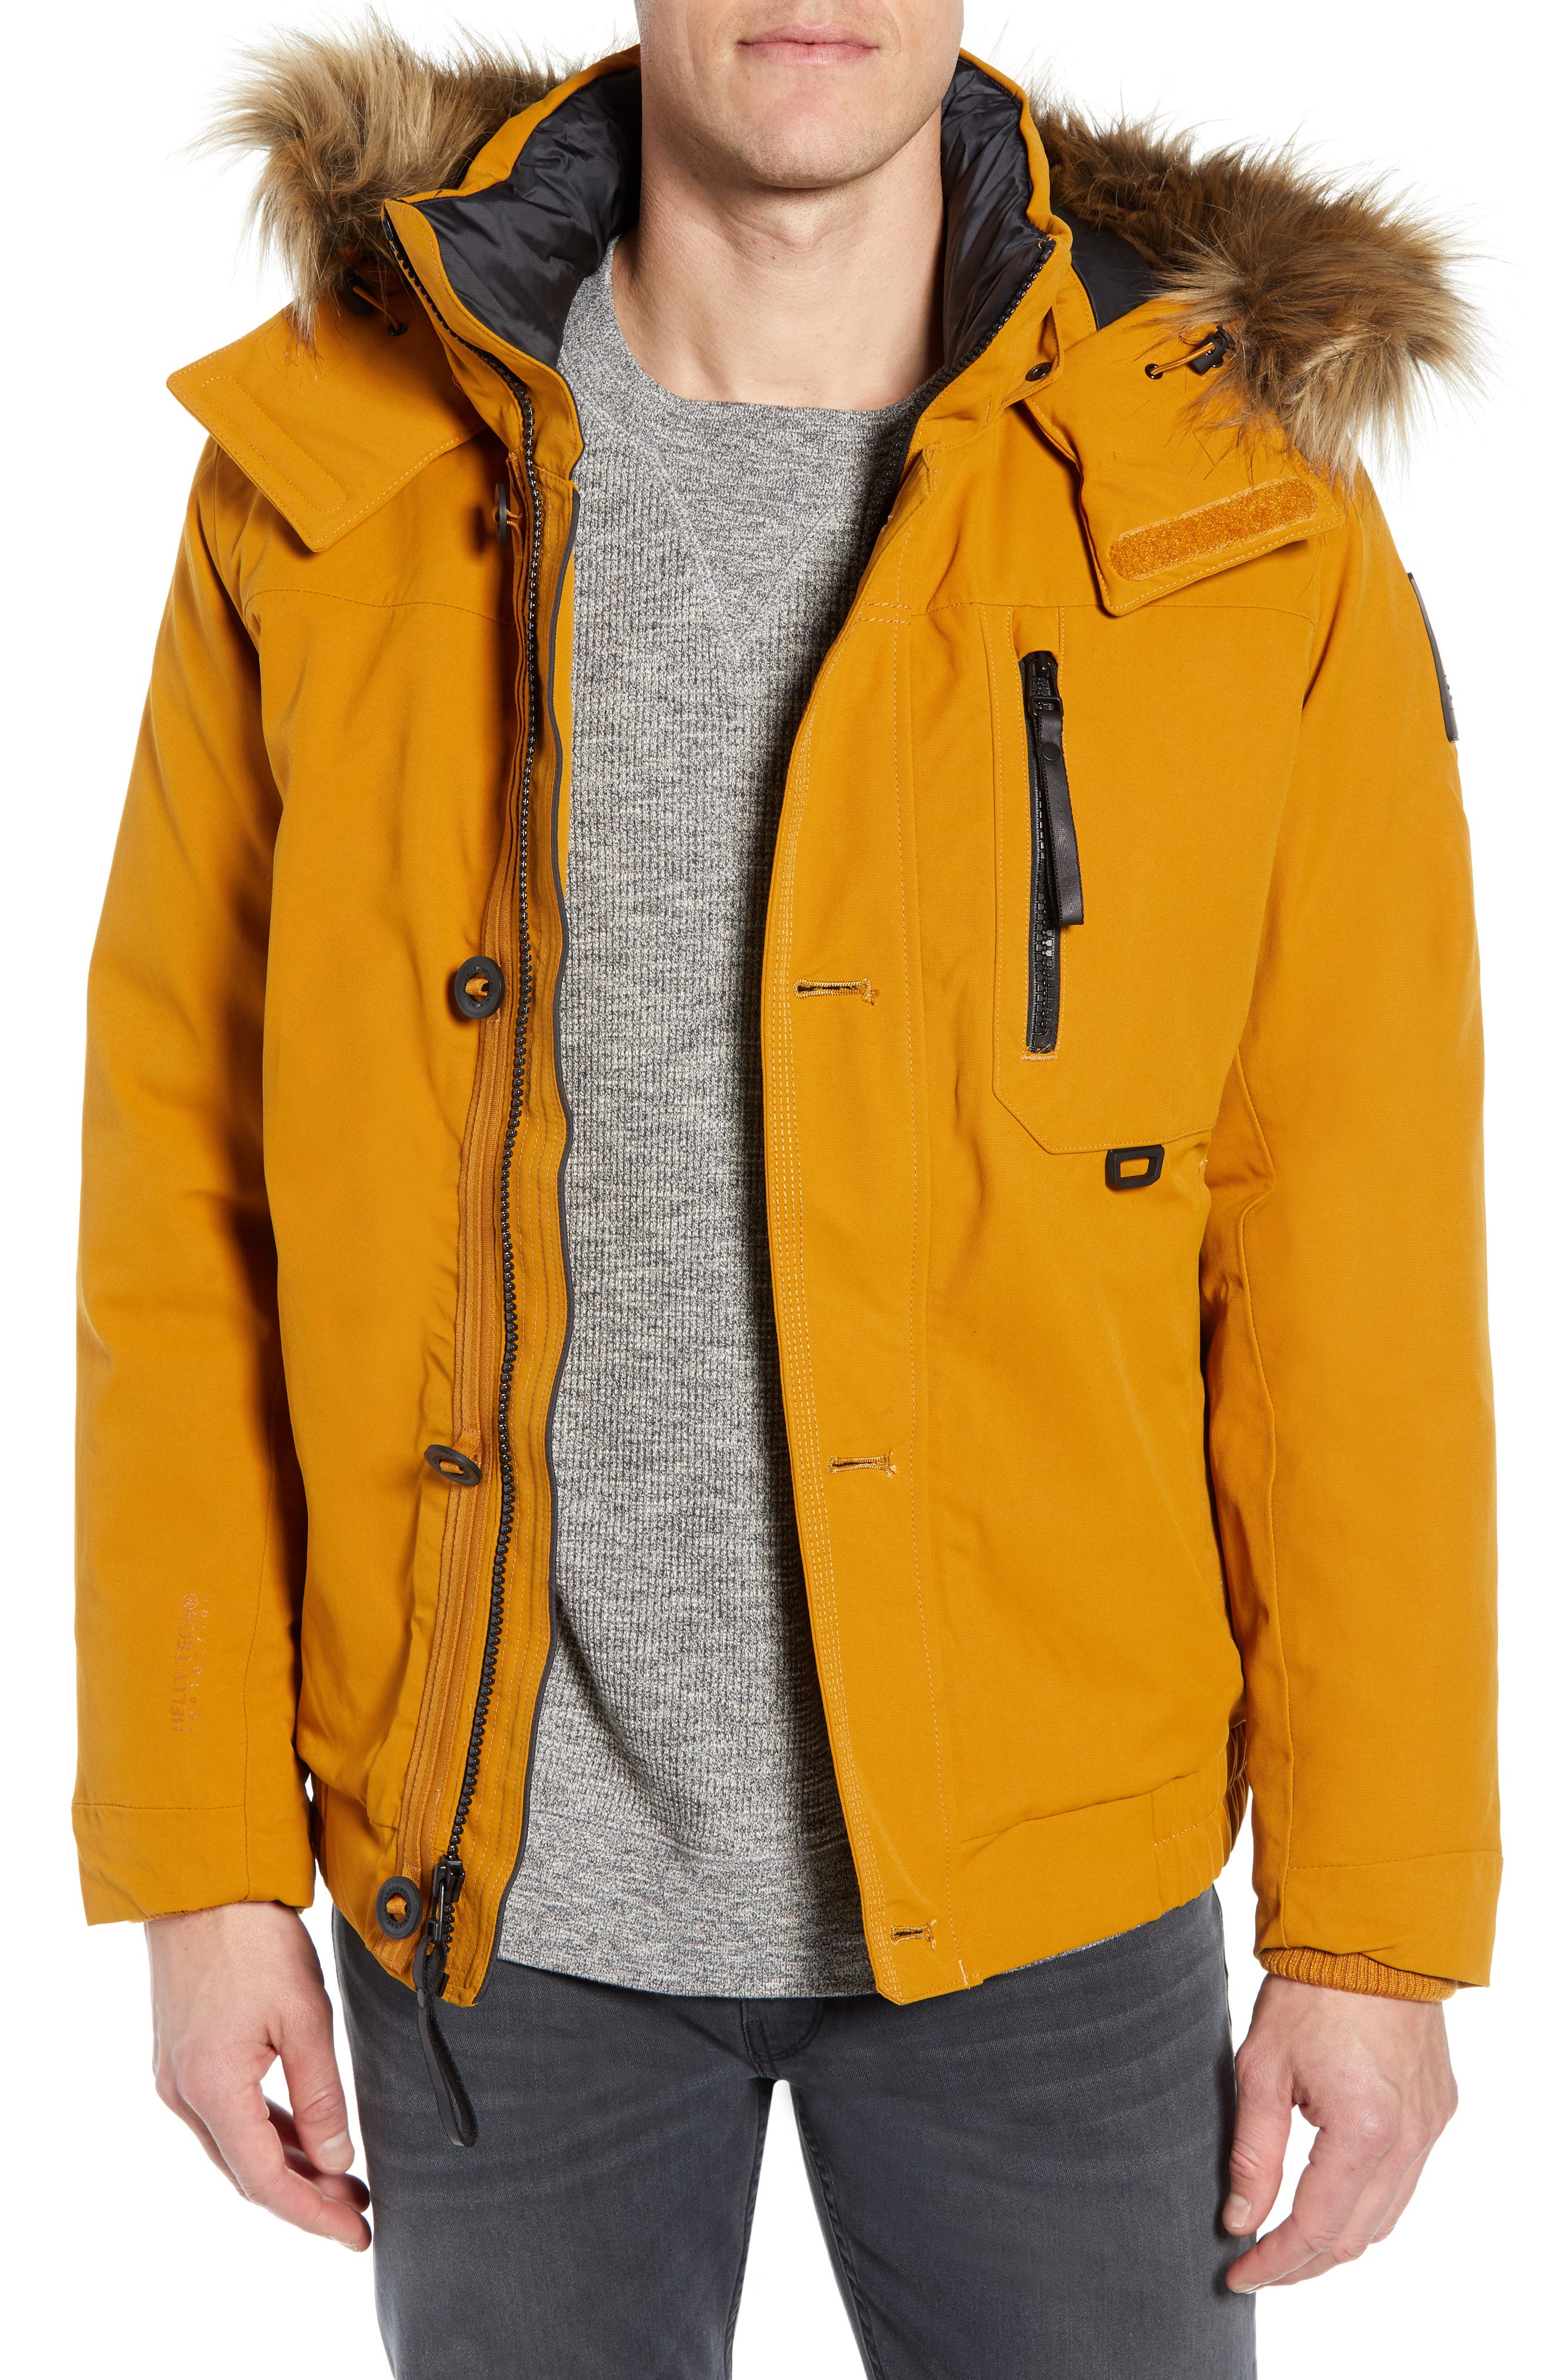 Helly Hansen Bardu Waterproof Bomber Jacket With Detachable Hood And Faux Fur Trim, Yellow